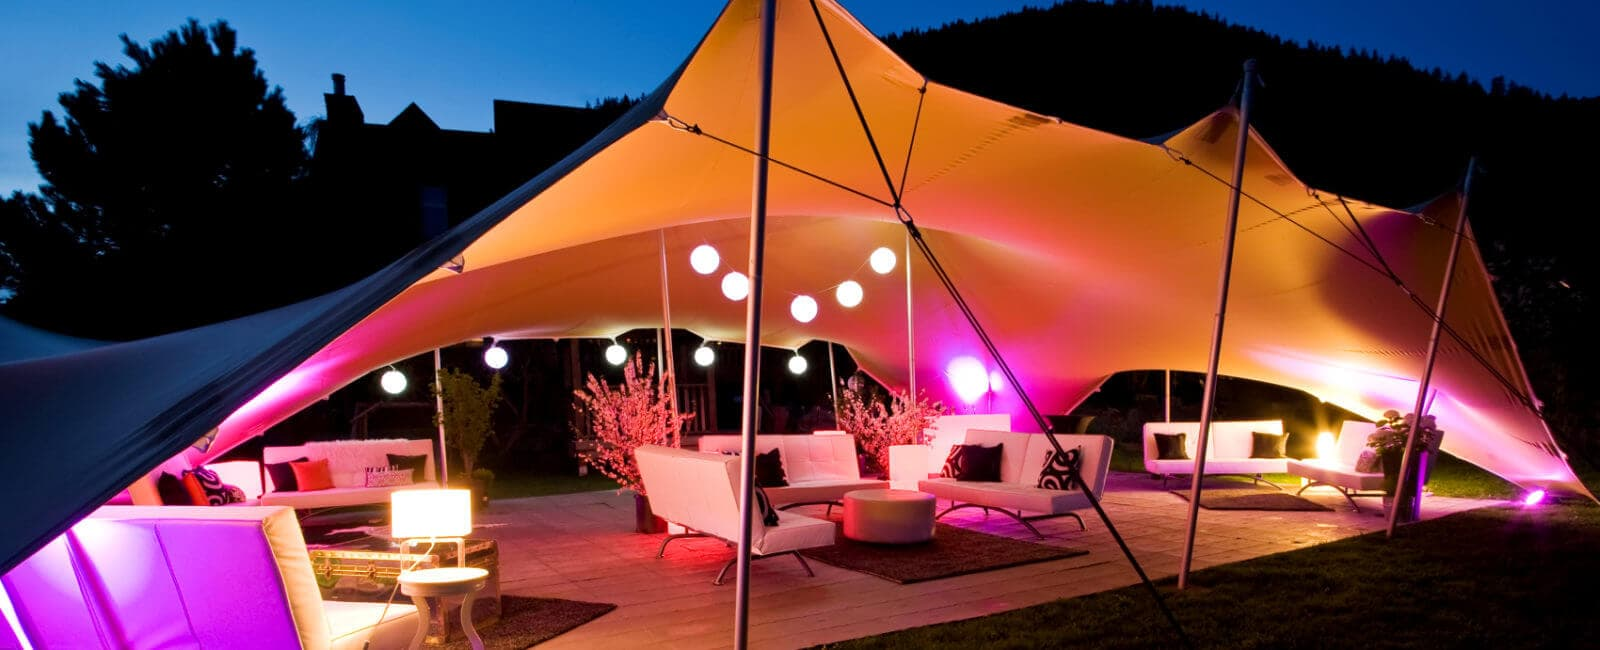 Stretchy Tents